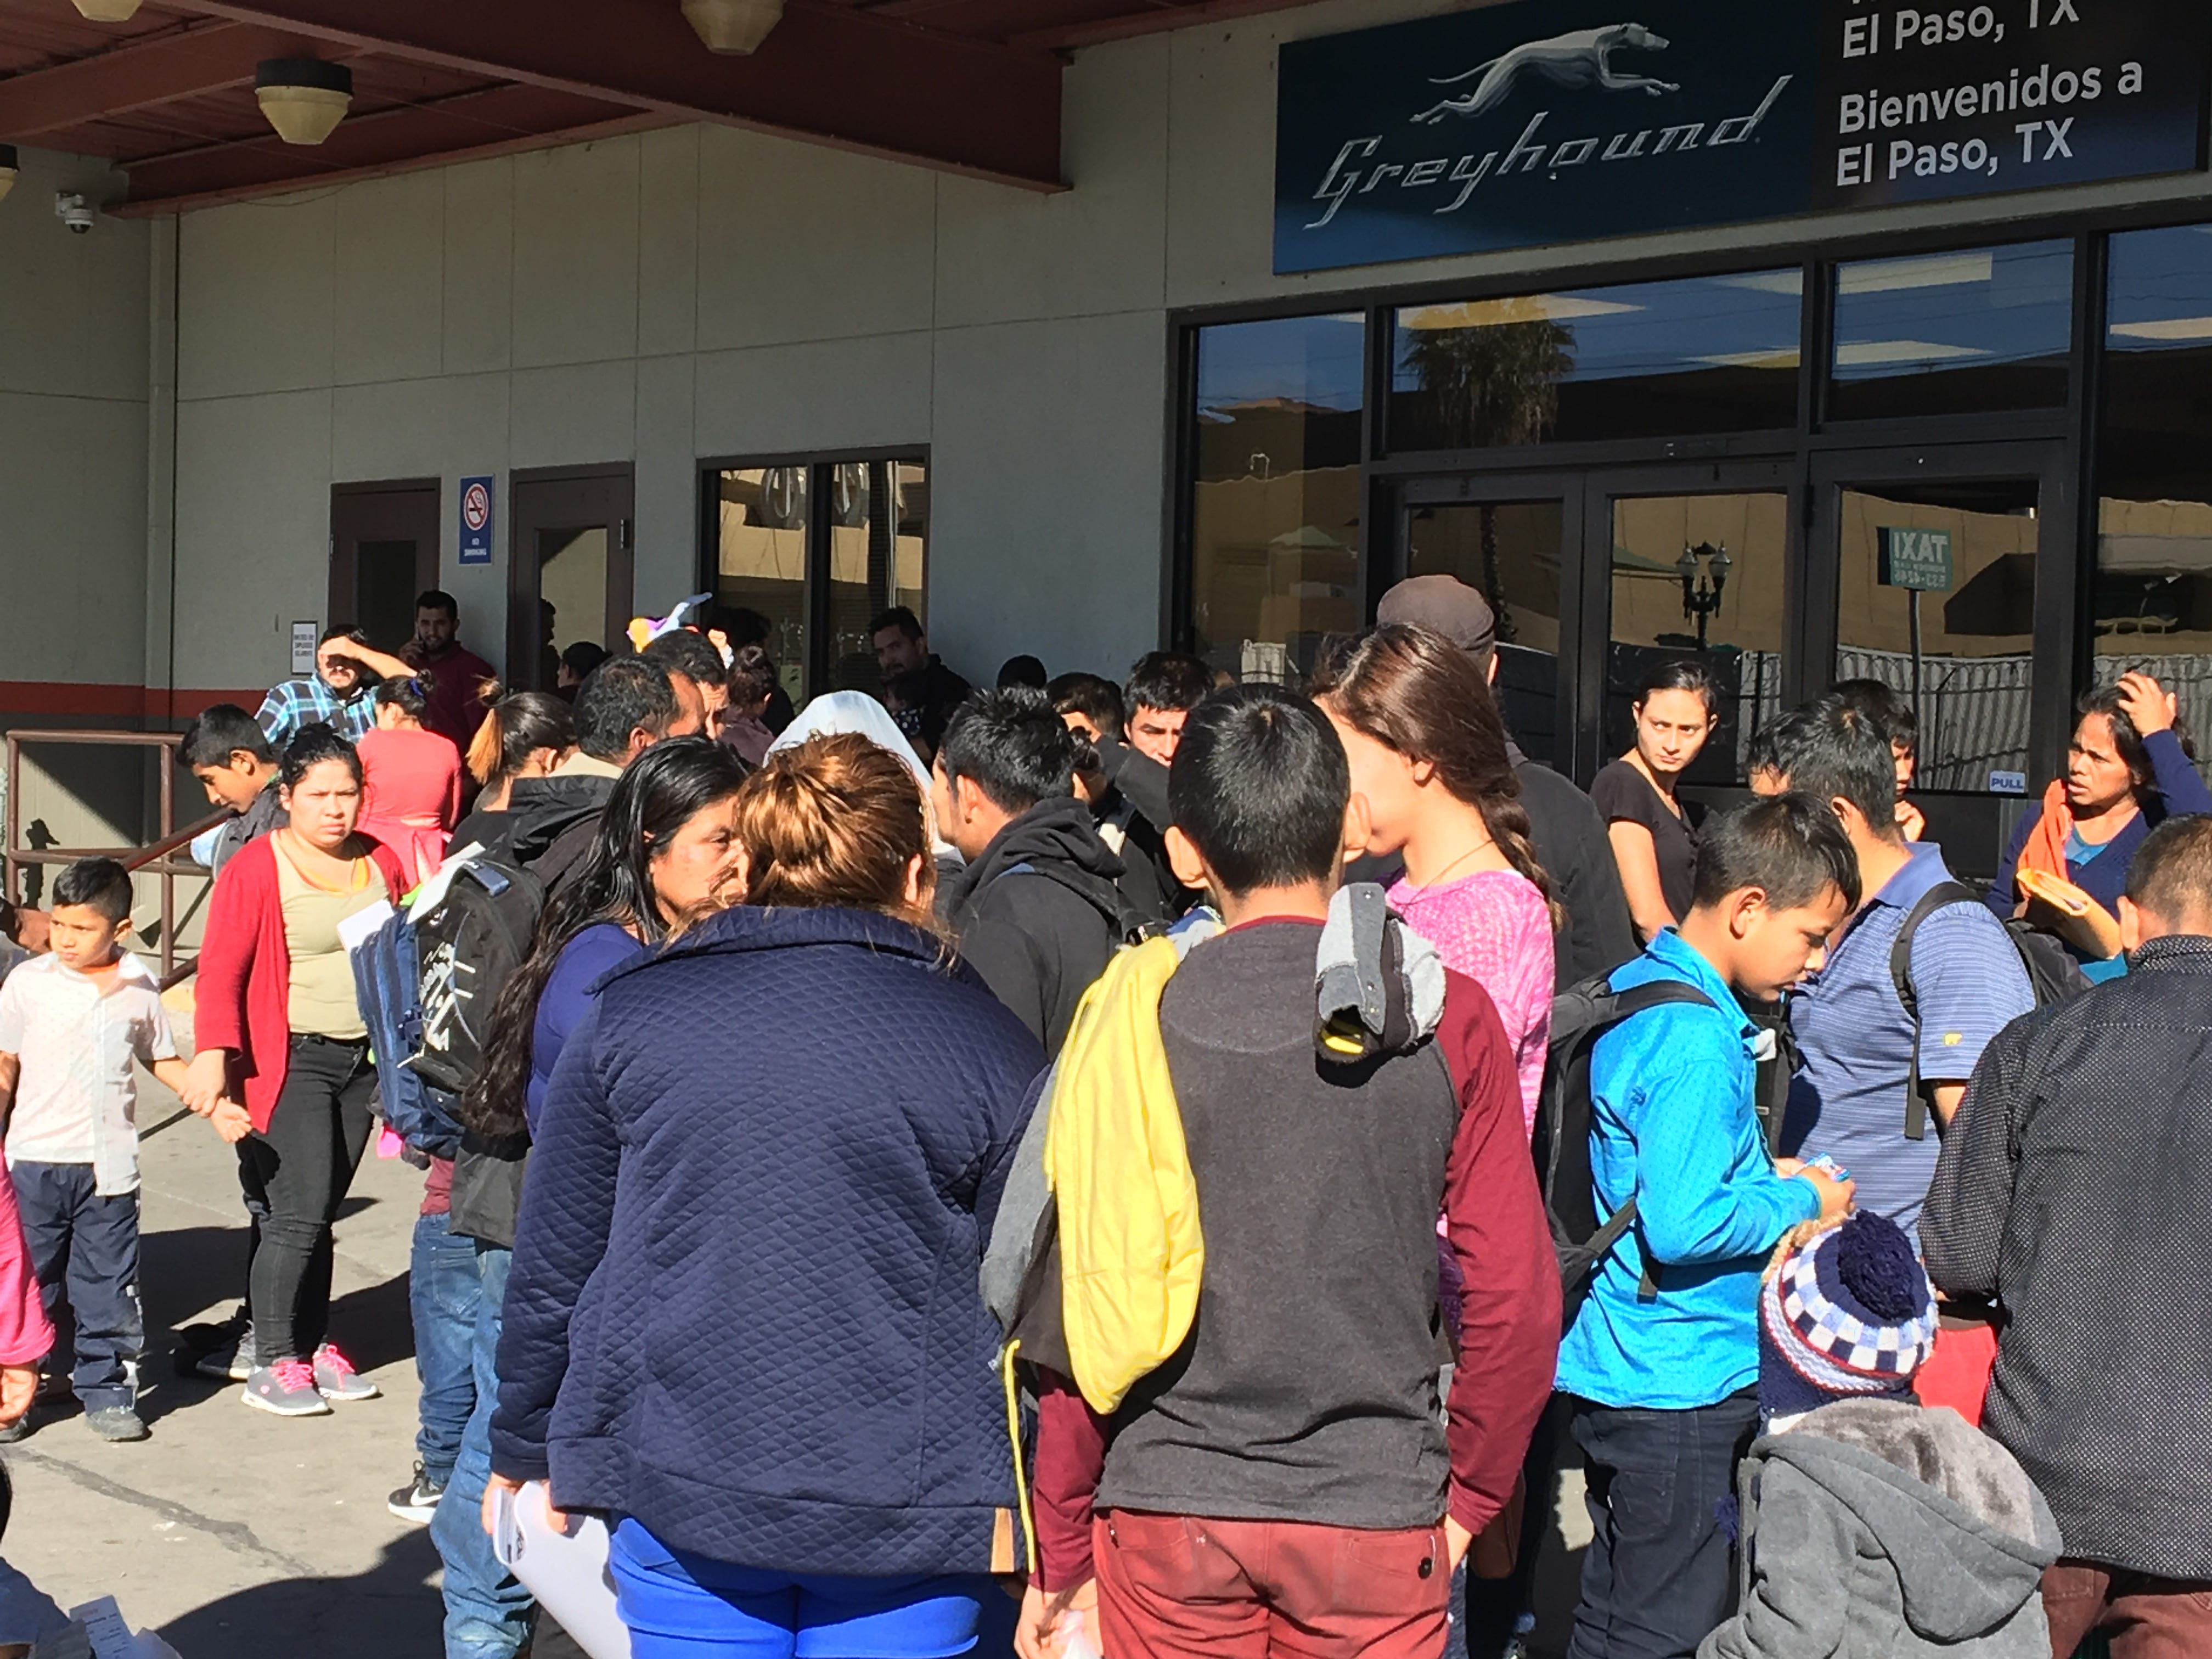 Migrants crowd the Greyhound bus station Monday, Dec. 24, 2018, in Downtown El Paso after they were released by Immigration and Customs Enforcement.